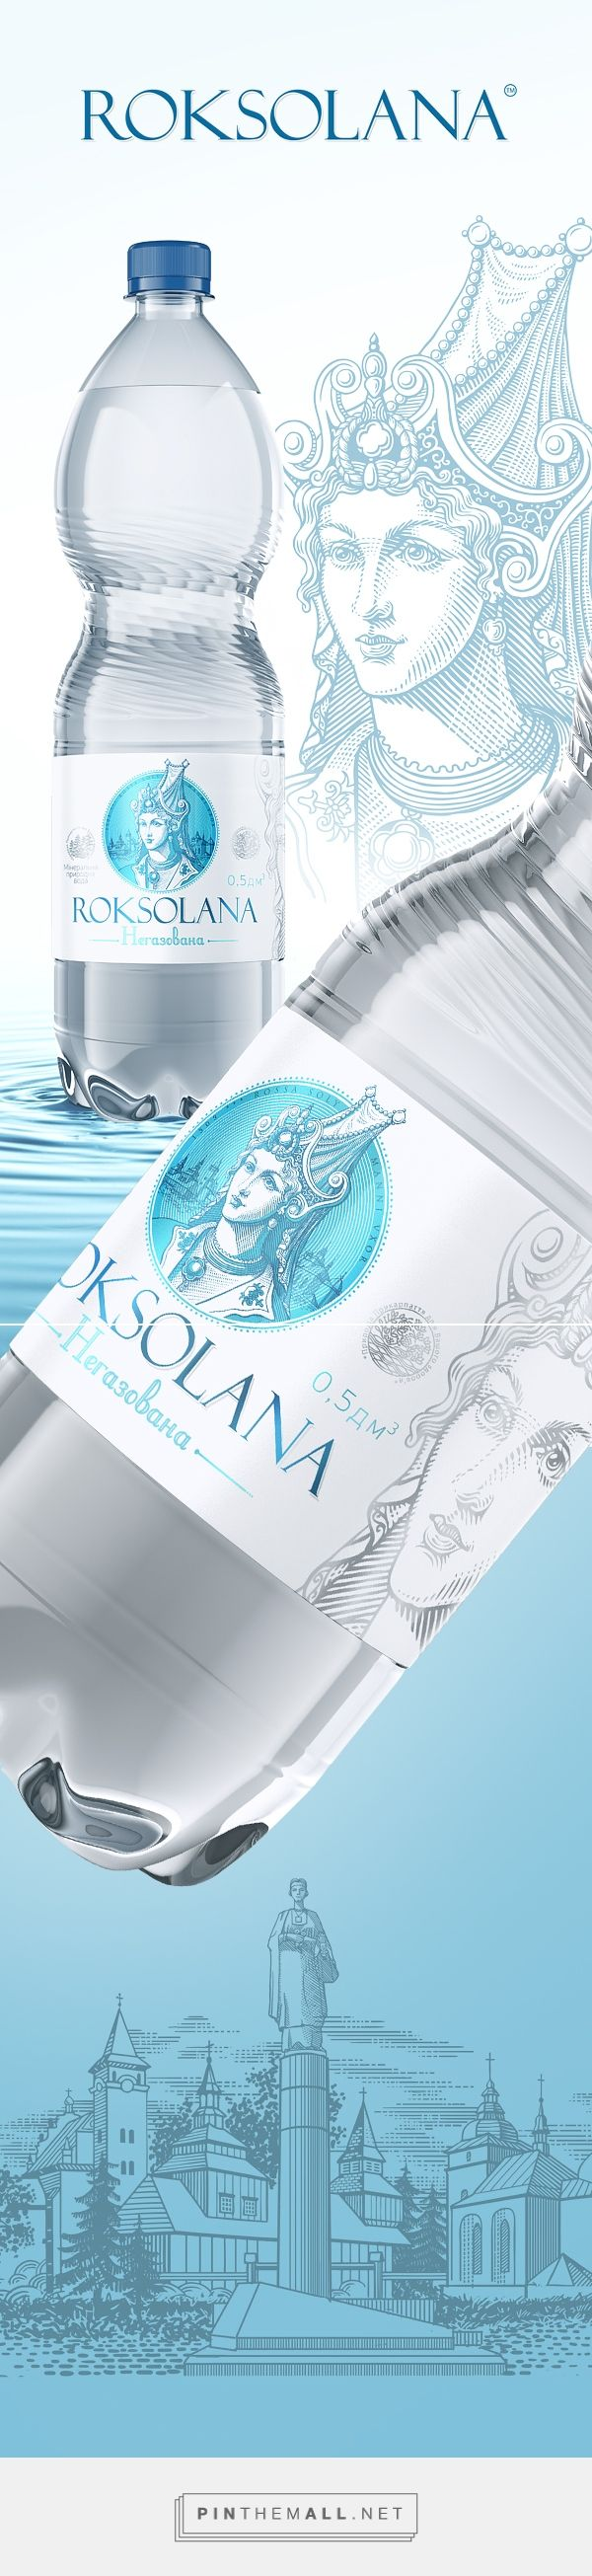 Roksolana on Behance curated by Packaging Diva PD. Brand and packaging design for mineral water Roksolana.